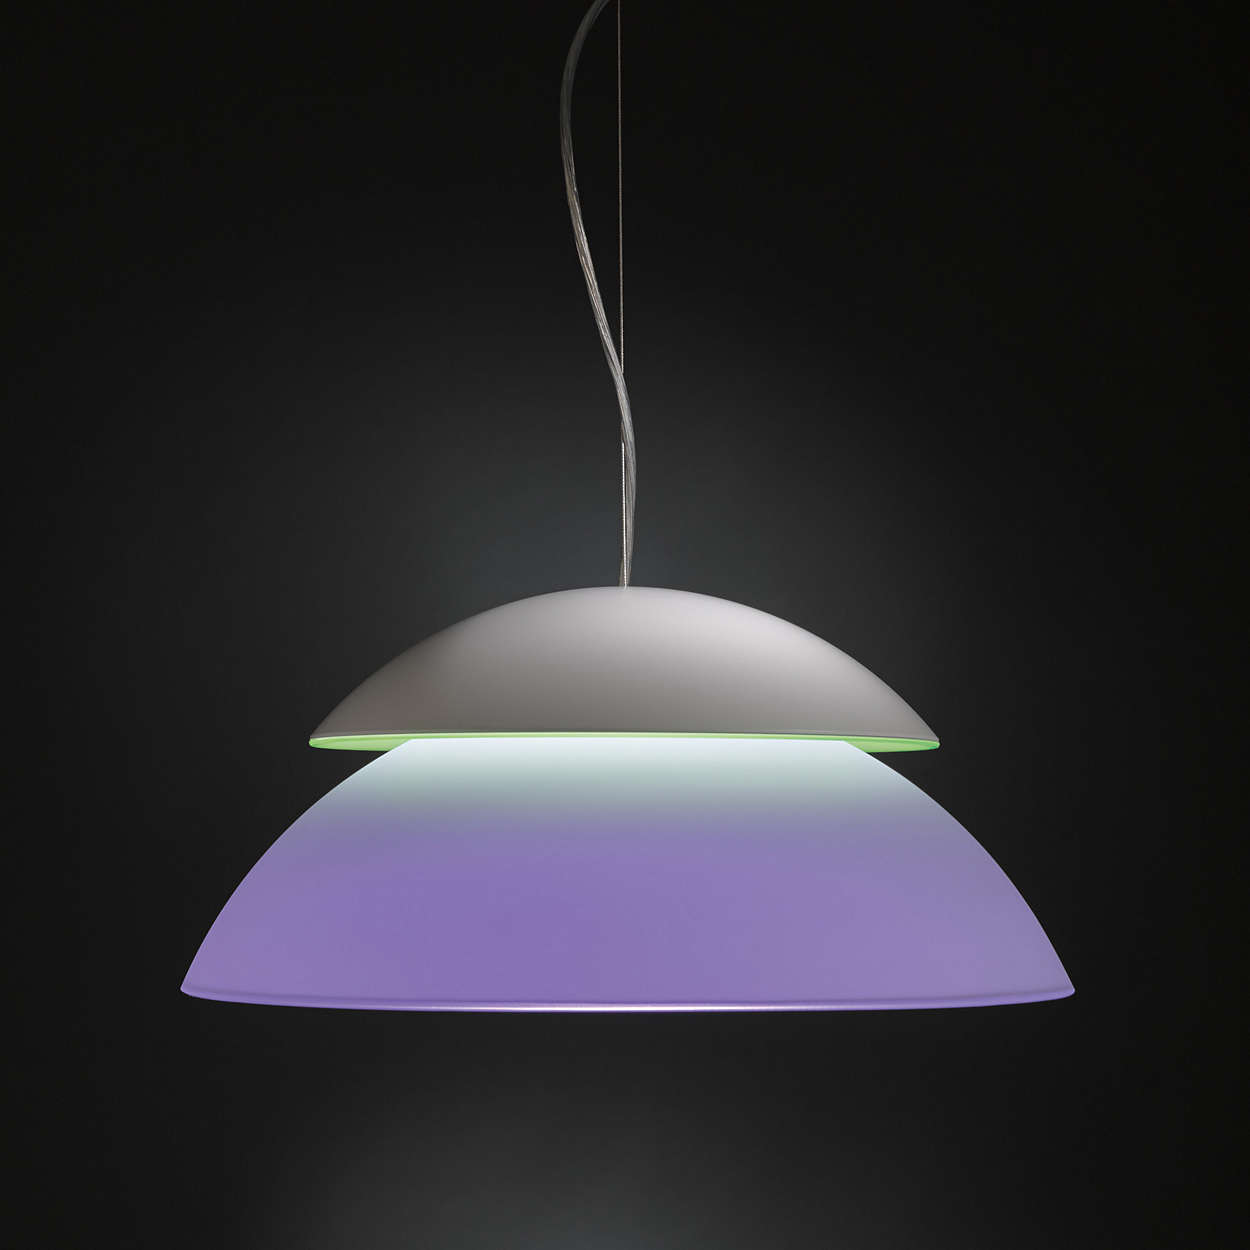 7120031PH-inteligentni-osvetleni-stropni-philips-hue